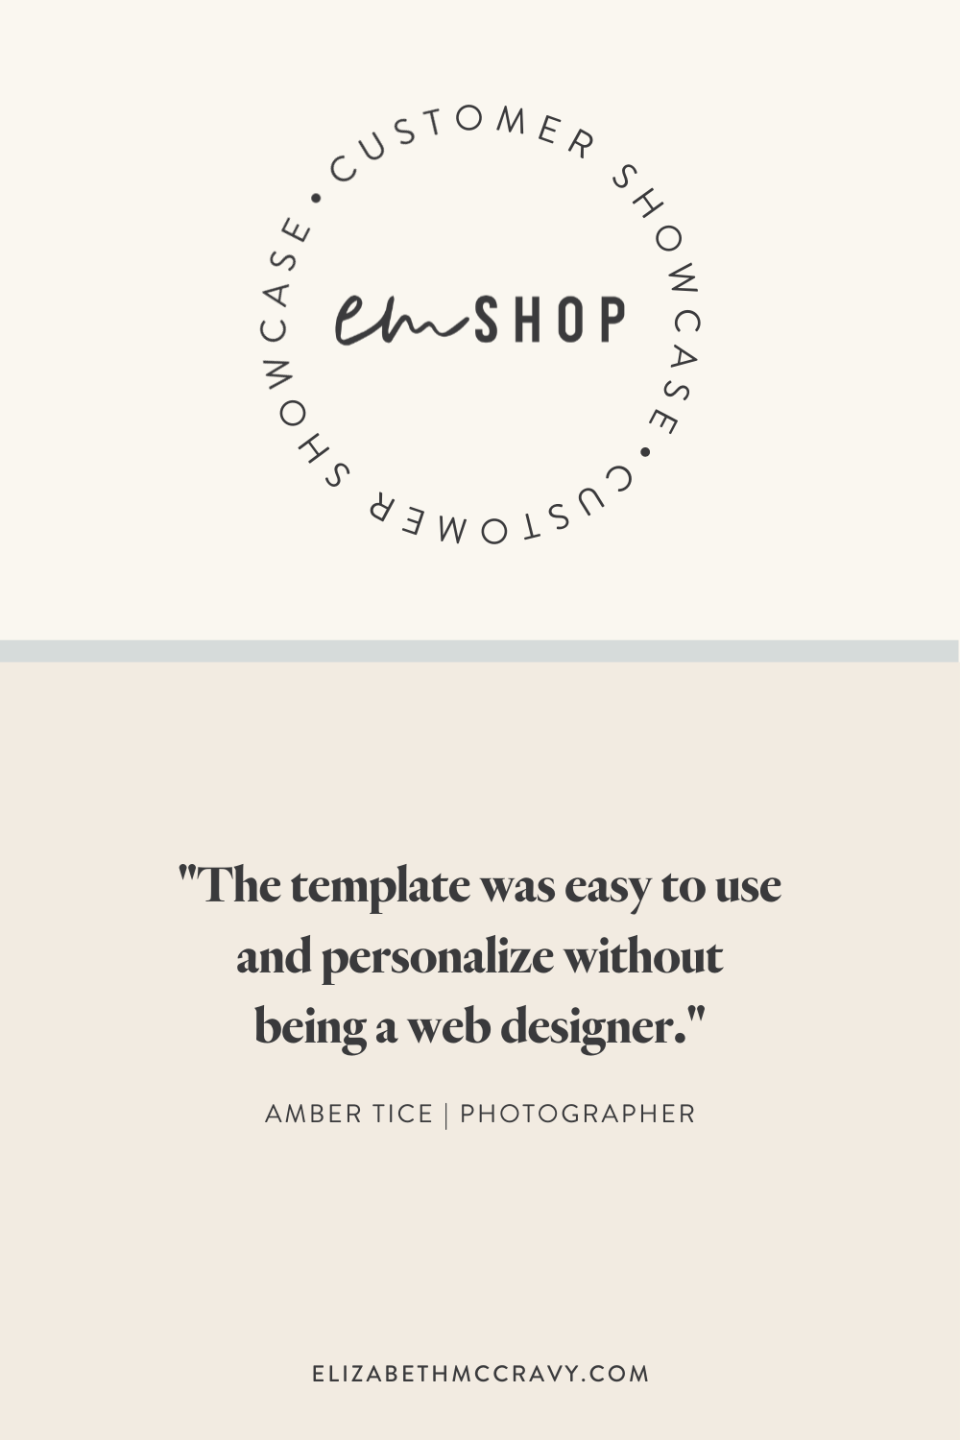 """""""The template was so wasy to use and personalize without being a designer!"""" - Amber Tice"""